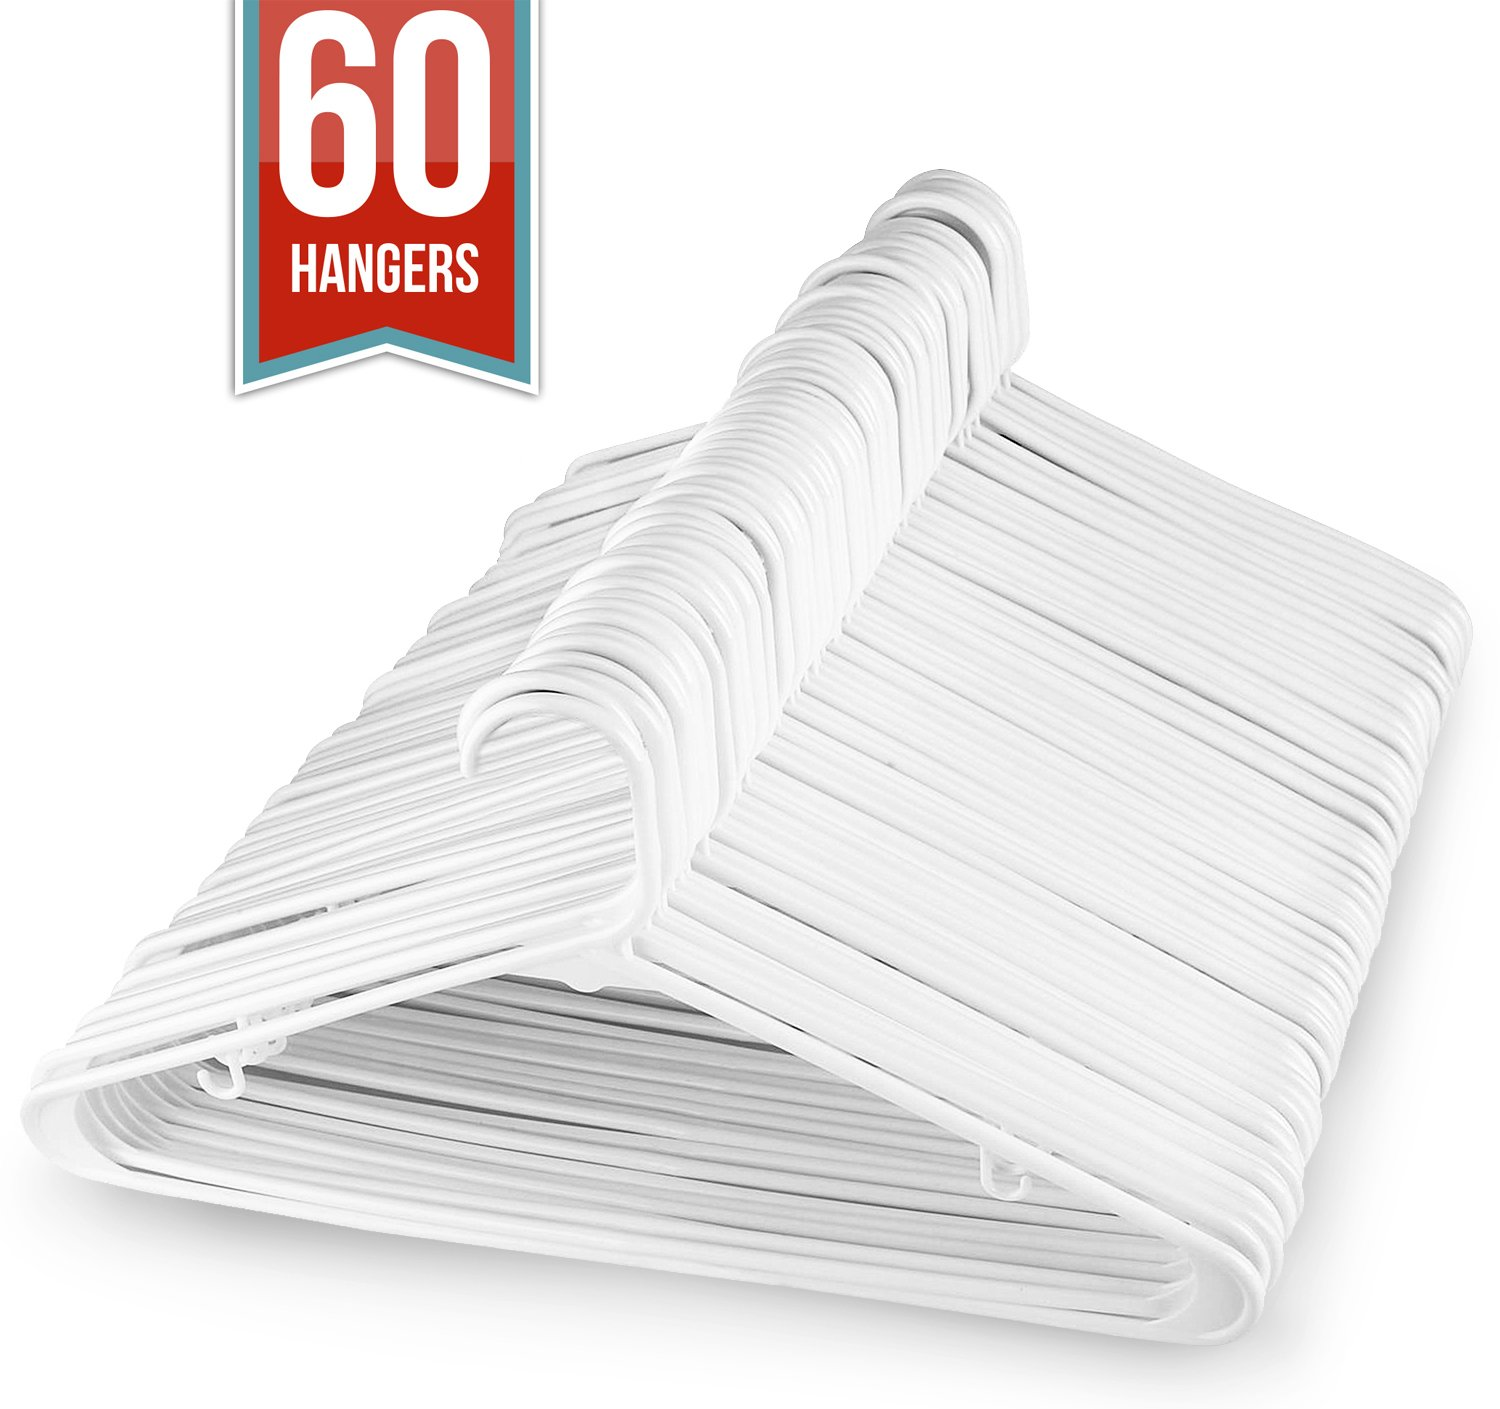 Sharpty White Hangers Plastic for Adults, Plastic Clothes Hangers Ideal for Everyday Standard Use, Clothing Hangers Pack of 60 by Sharpty